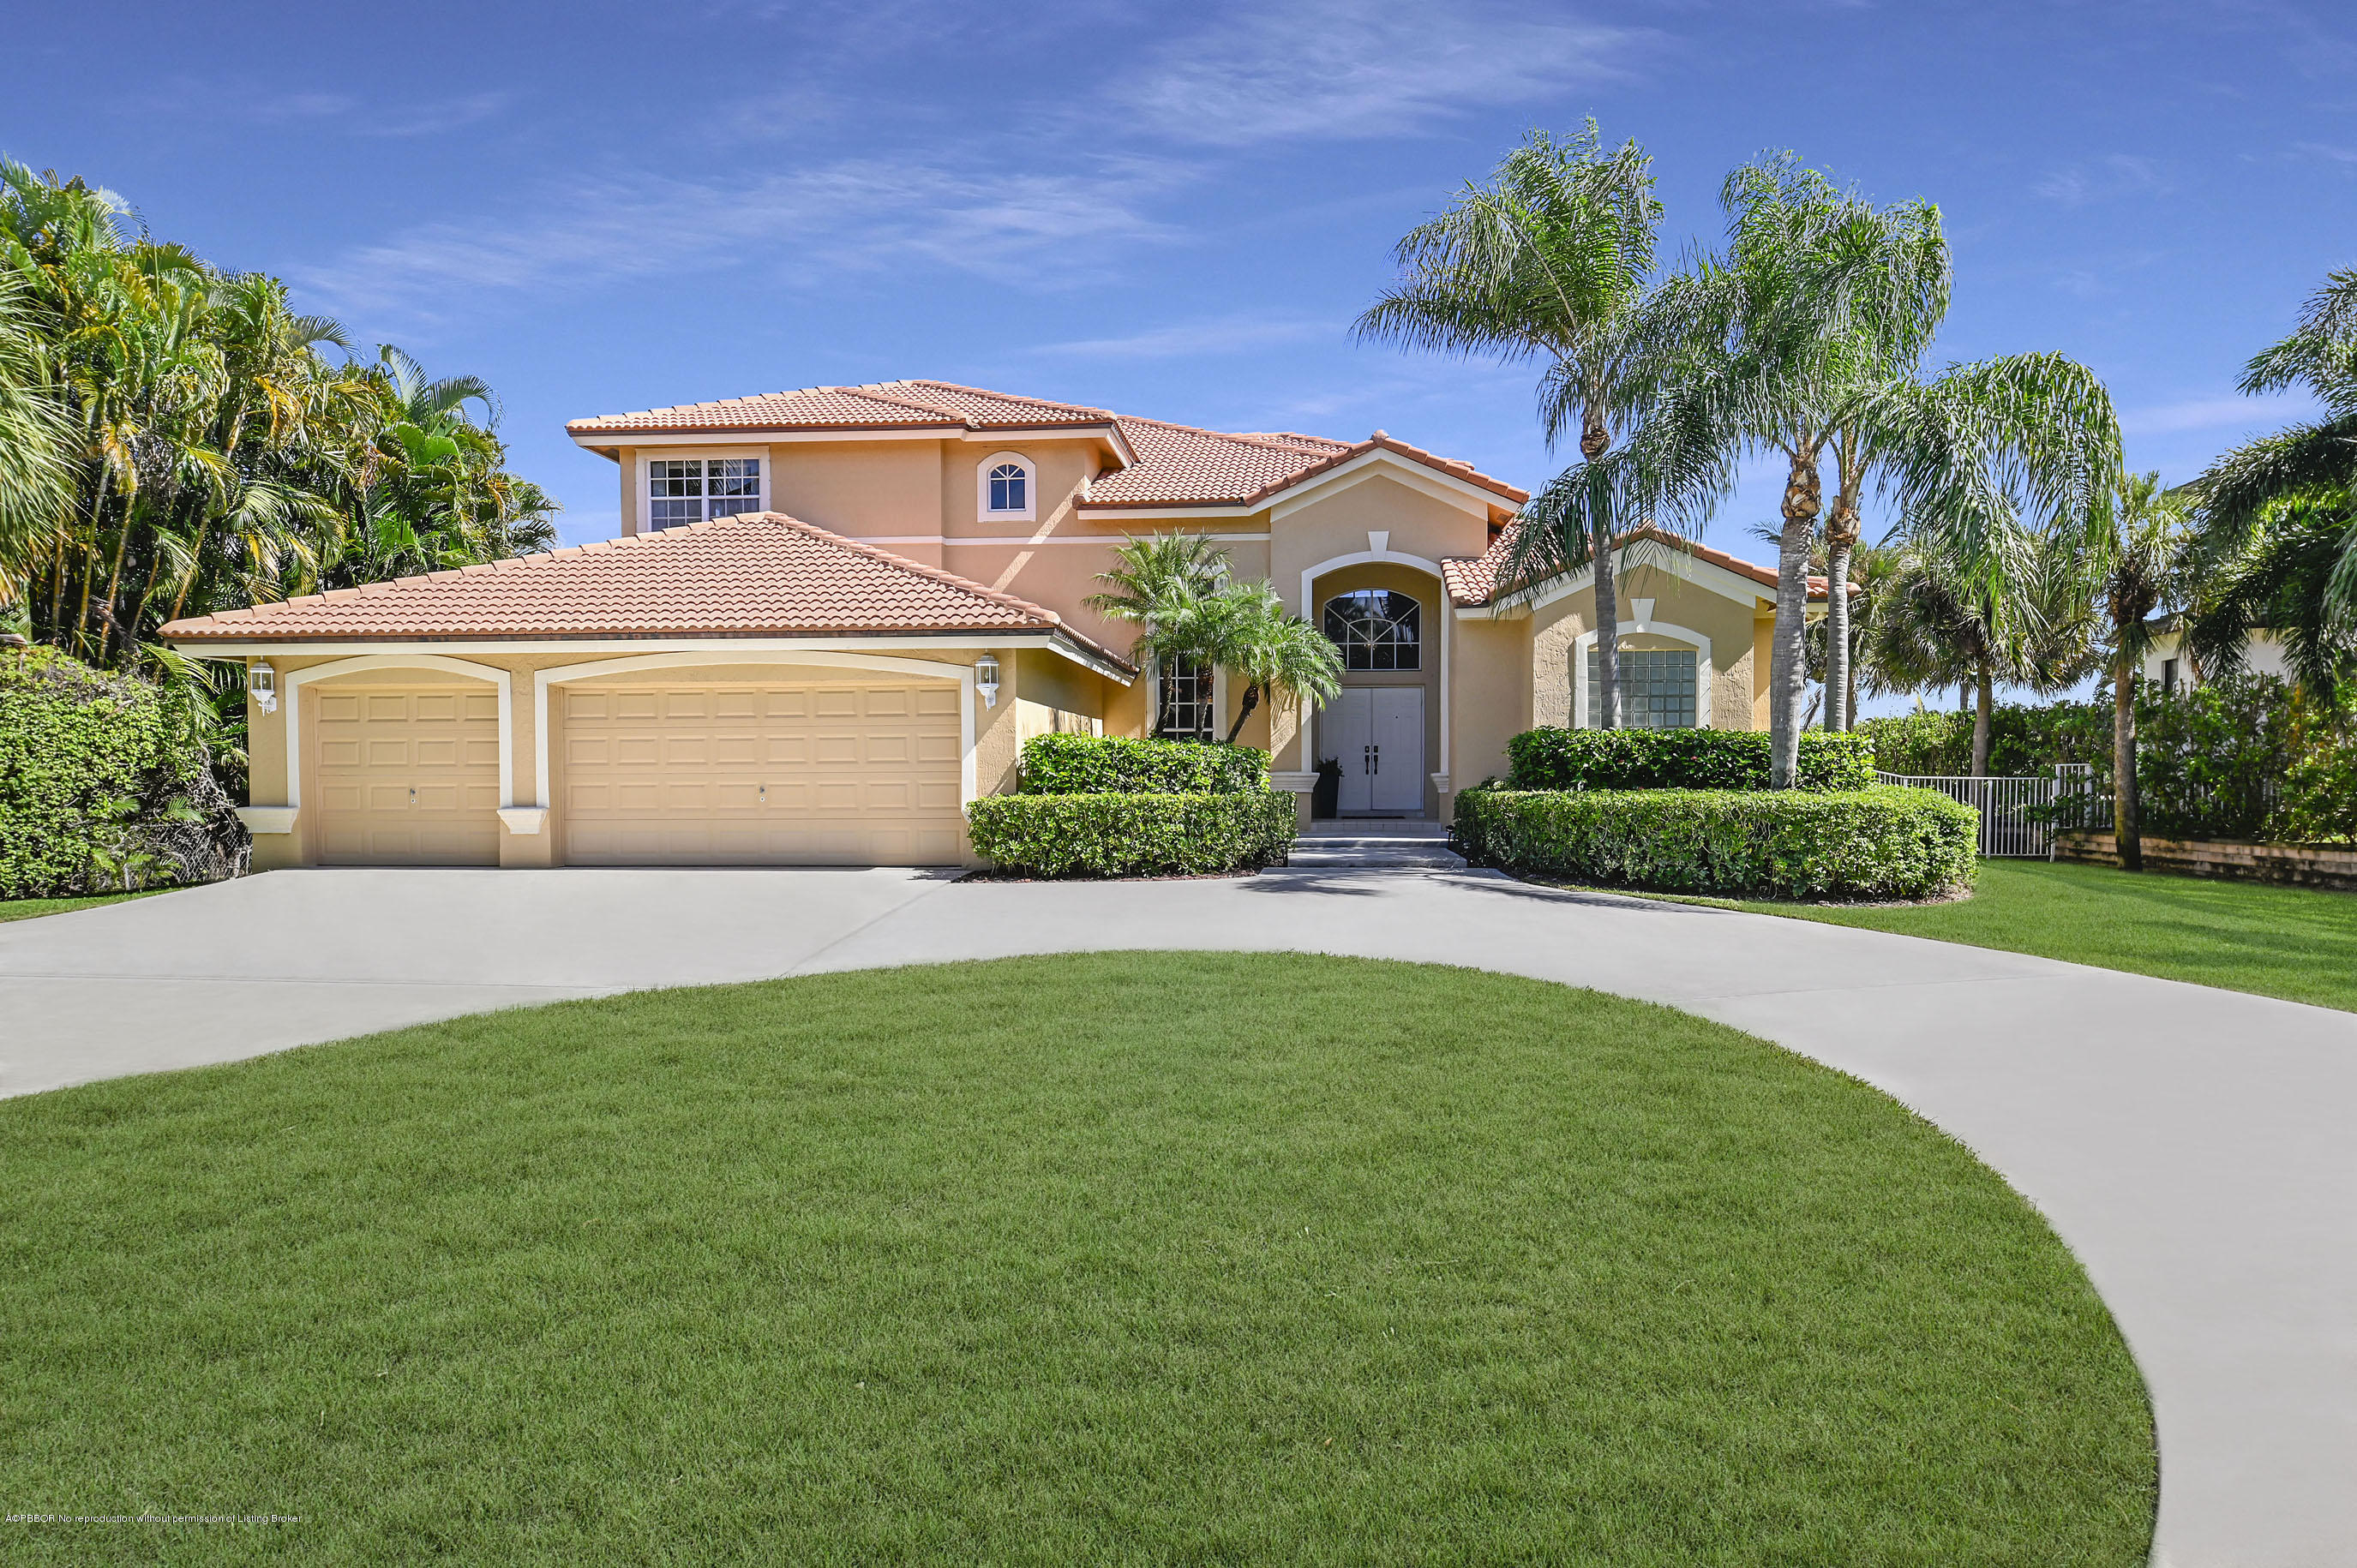 510 SE Atlantic Drive - Lantana, Florida